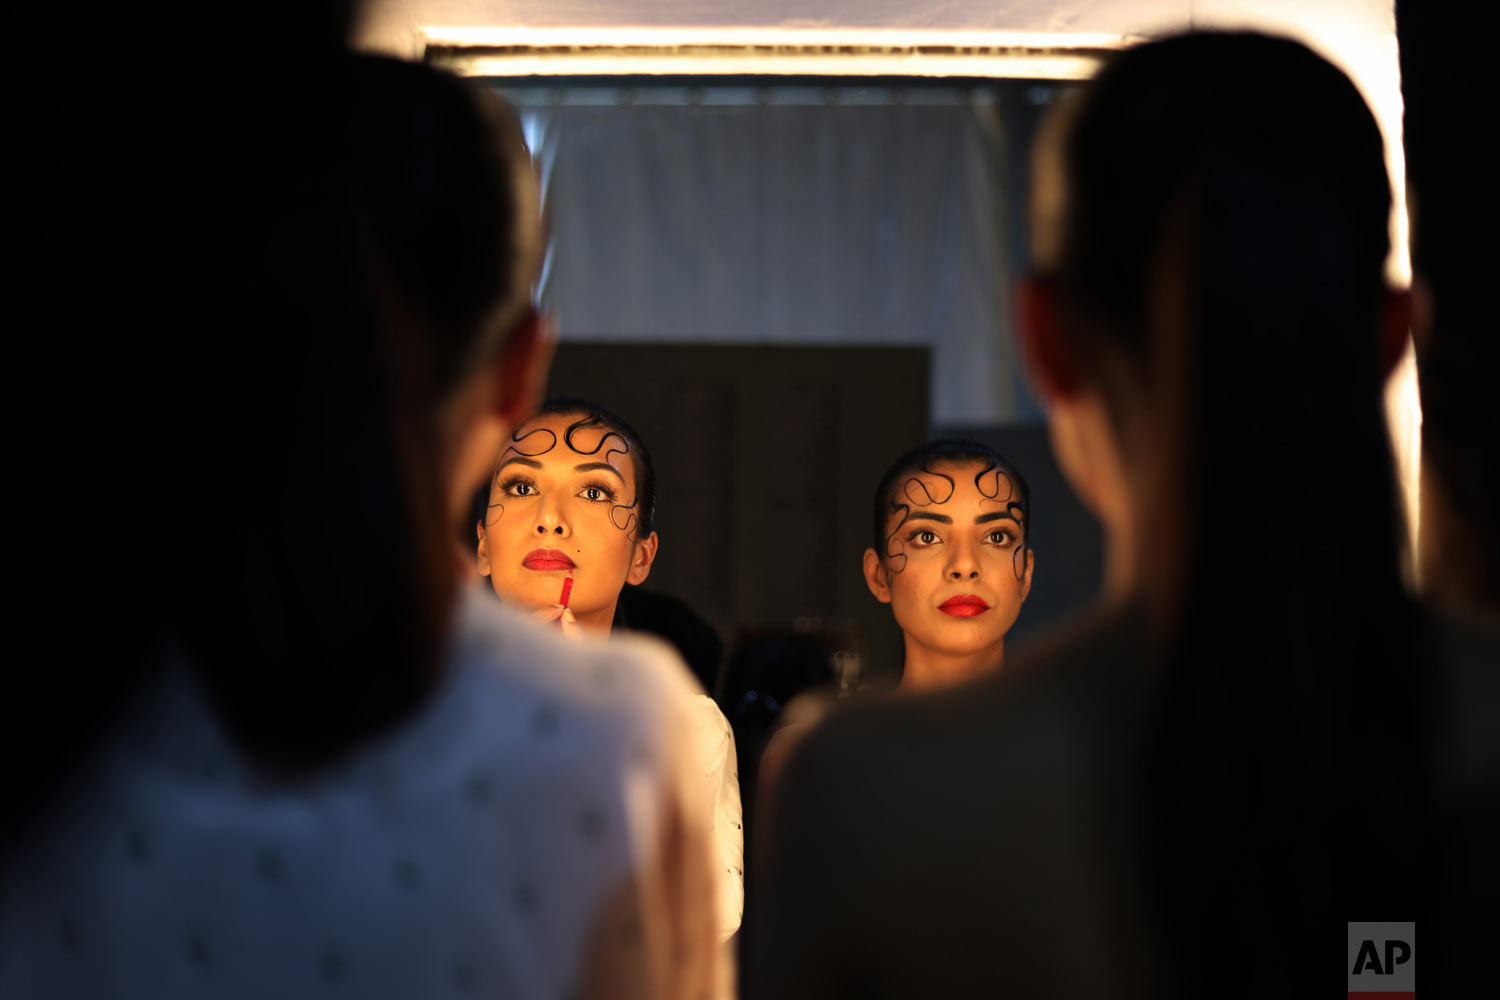 Models finish applying their makeup before taking to the runway at the Lotus Makeup India Fashion Week, on Wednesday, March 13, 2019, in New Delhi, India. (AP Photo/Manish Swarup)